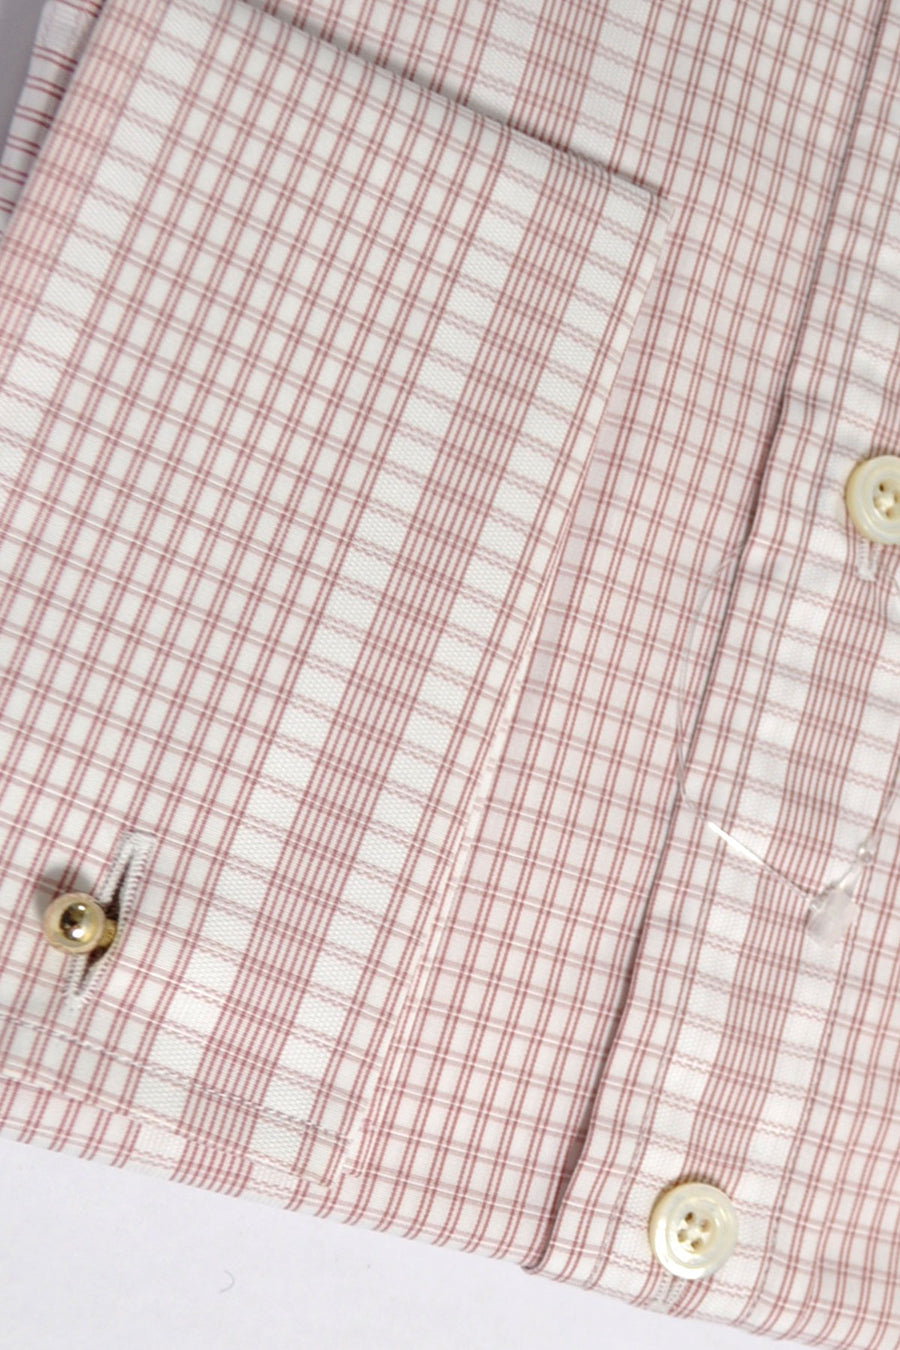 Tom Ford Shirt Pink White Stripes Check